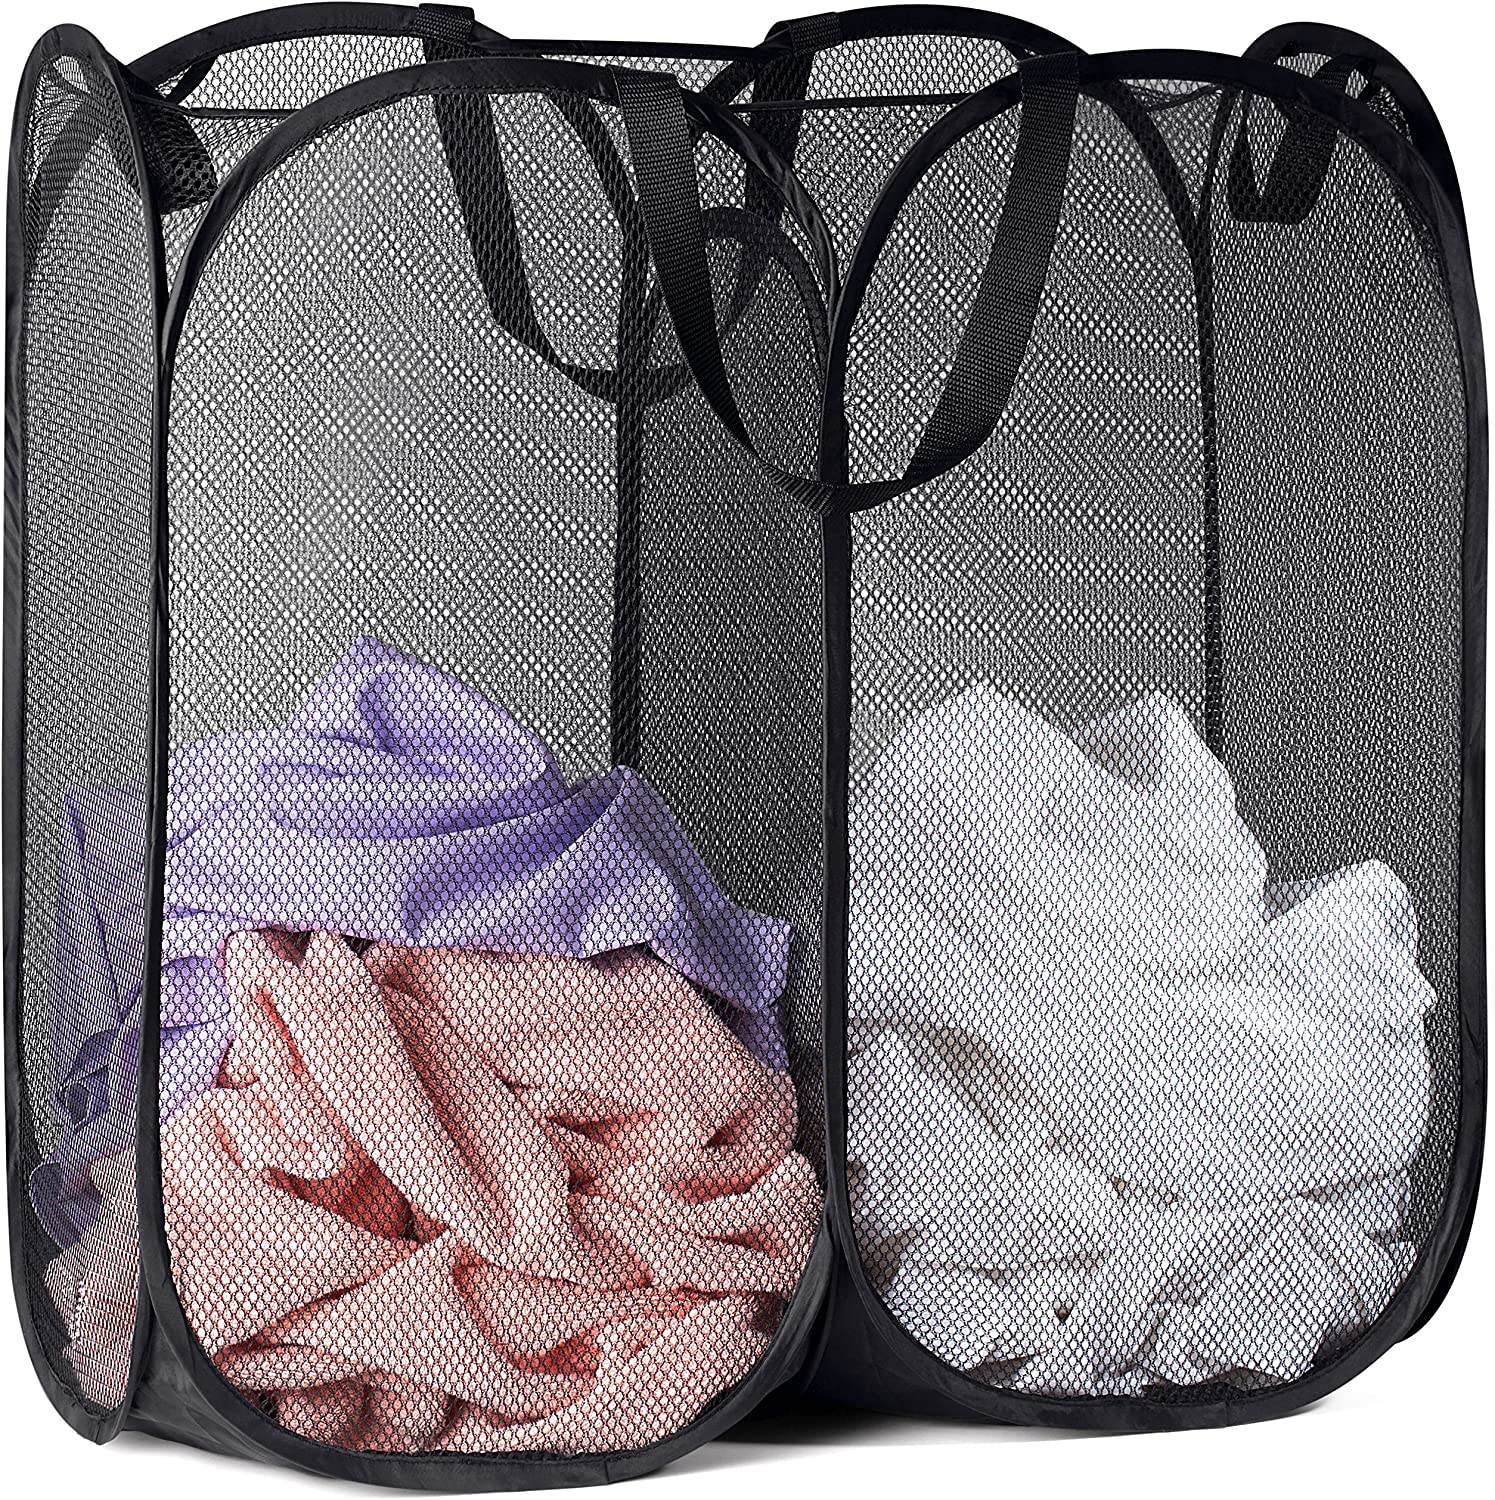 Mesh Popup Laundry Latest item Hamper - Collapsible St Compartments Indianapolis Mall for Two